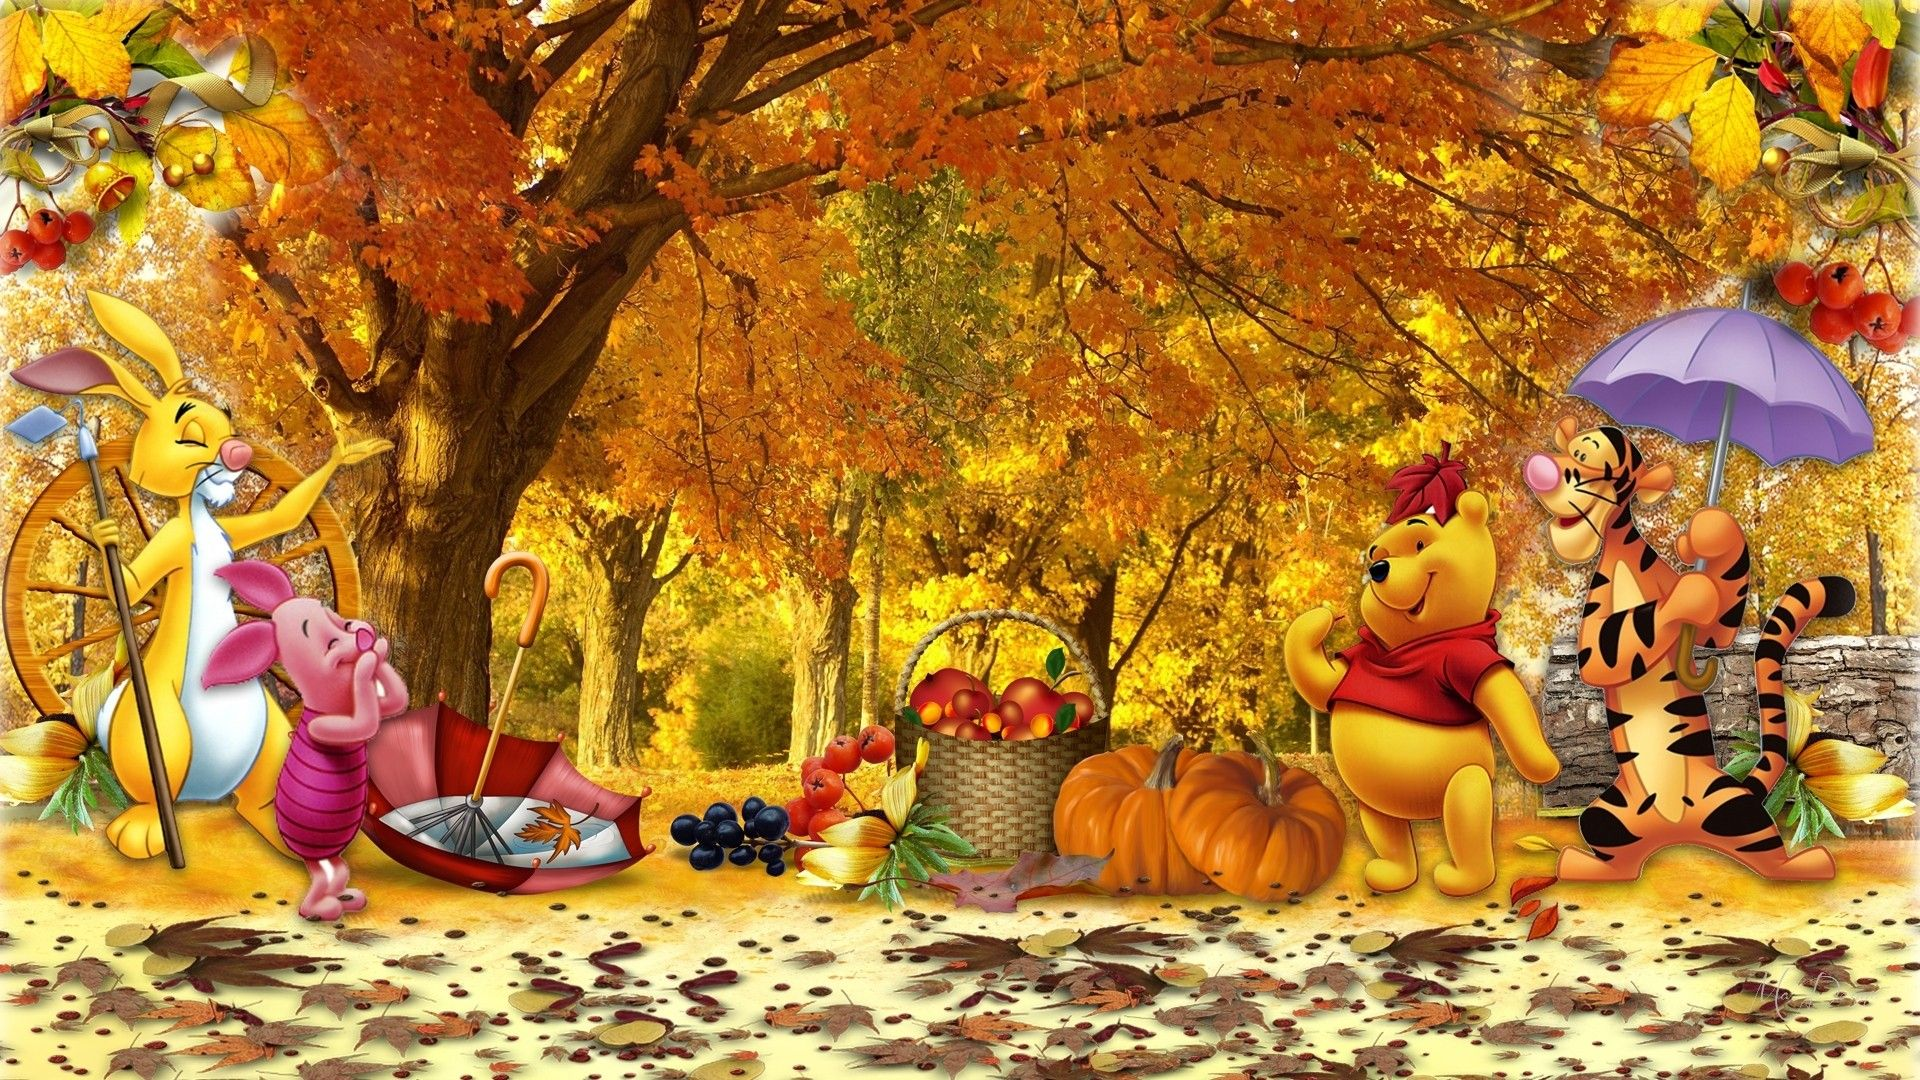 1920x1080 70 Wallpaper Autumn Winnie The Pooh Collection | Best Wallpaper HD